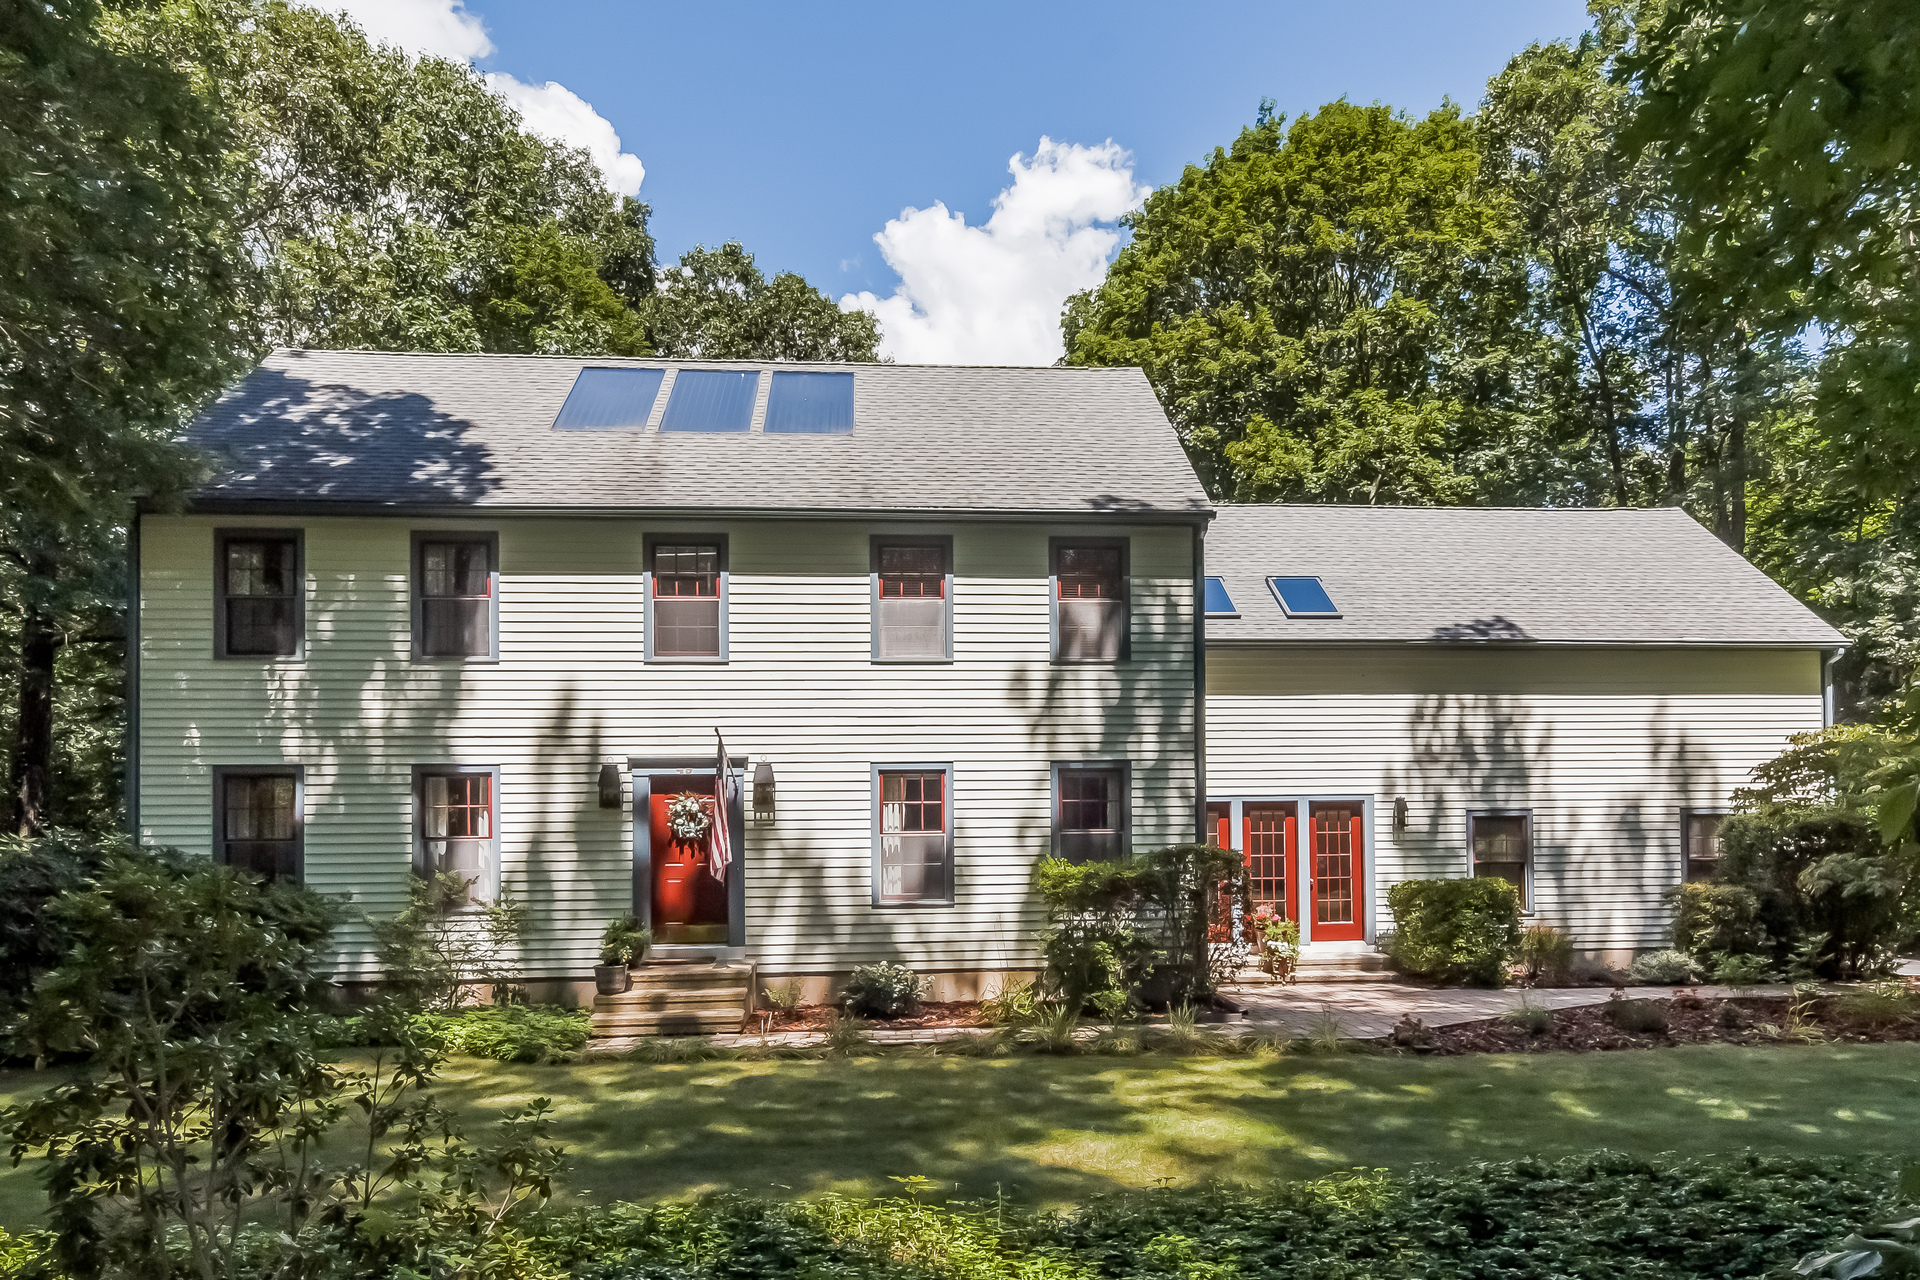 Single Family Home for Sale at 49 Old Miller Ln Guilford, Connecticut, 06437 United States